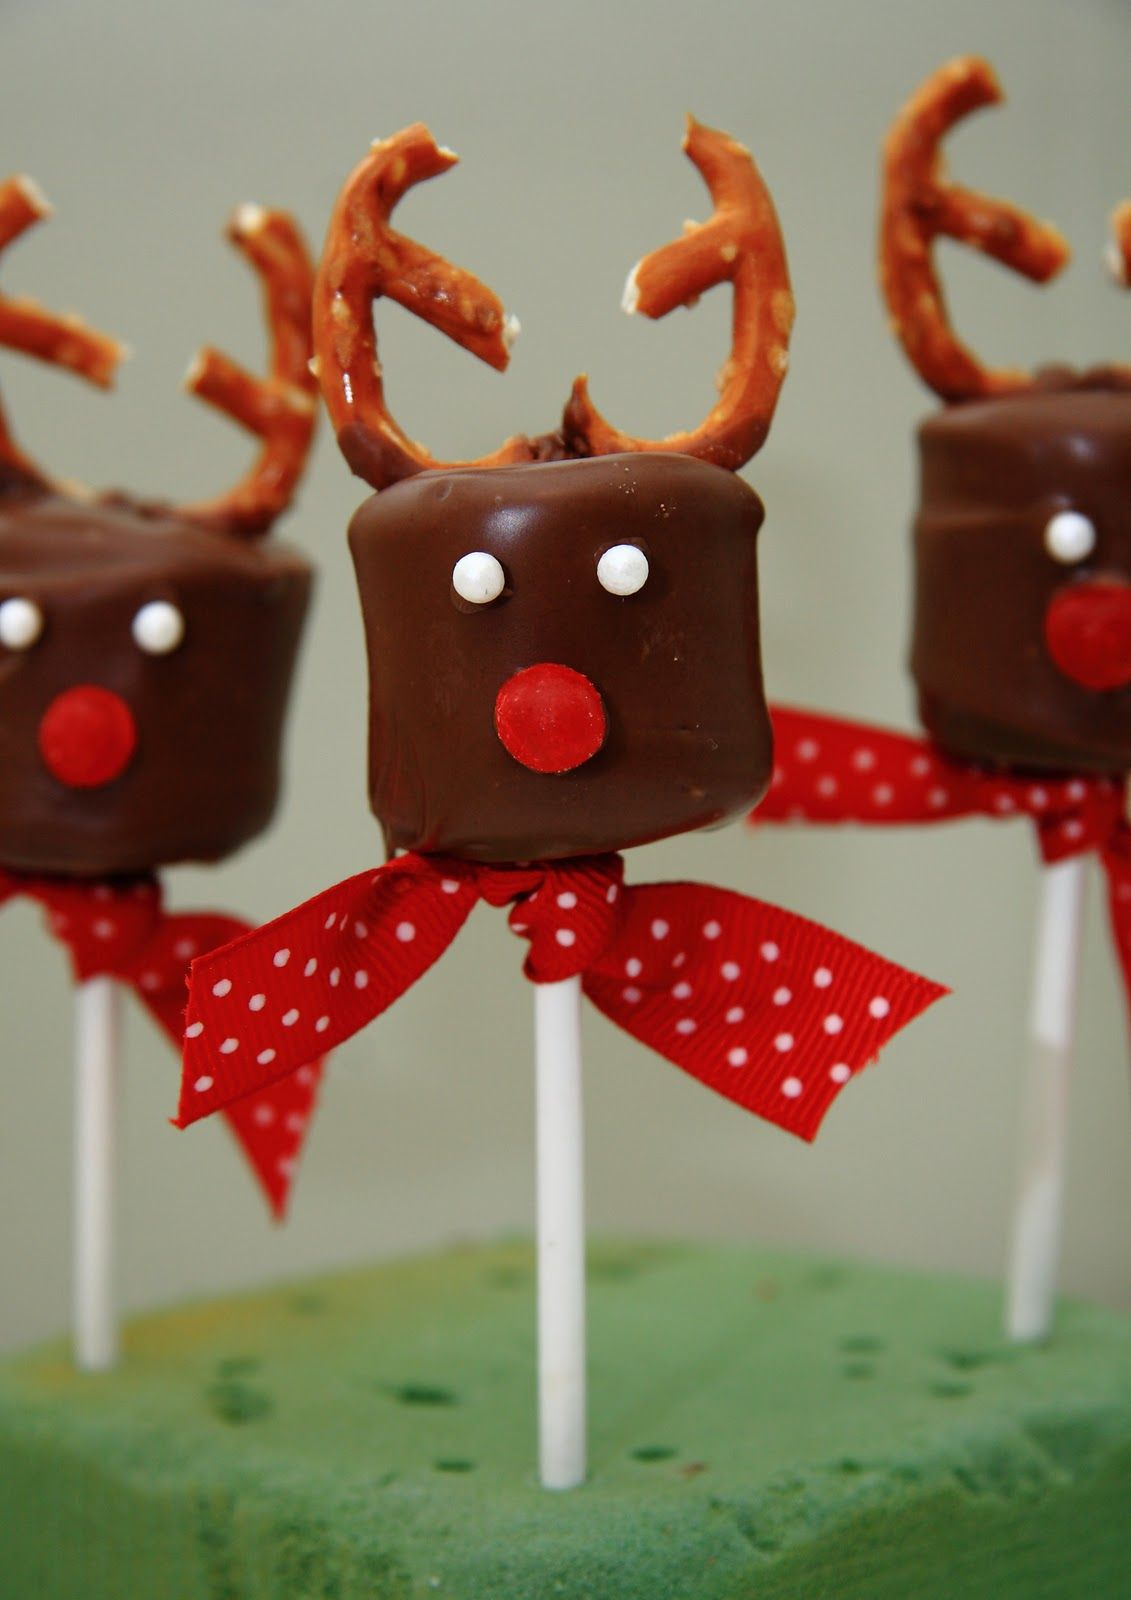 Christmas Party Ideas At Home Part - 35: 21 Amazing Christmas Party Ideas For Kids